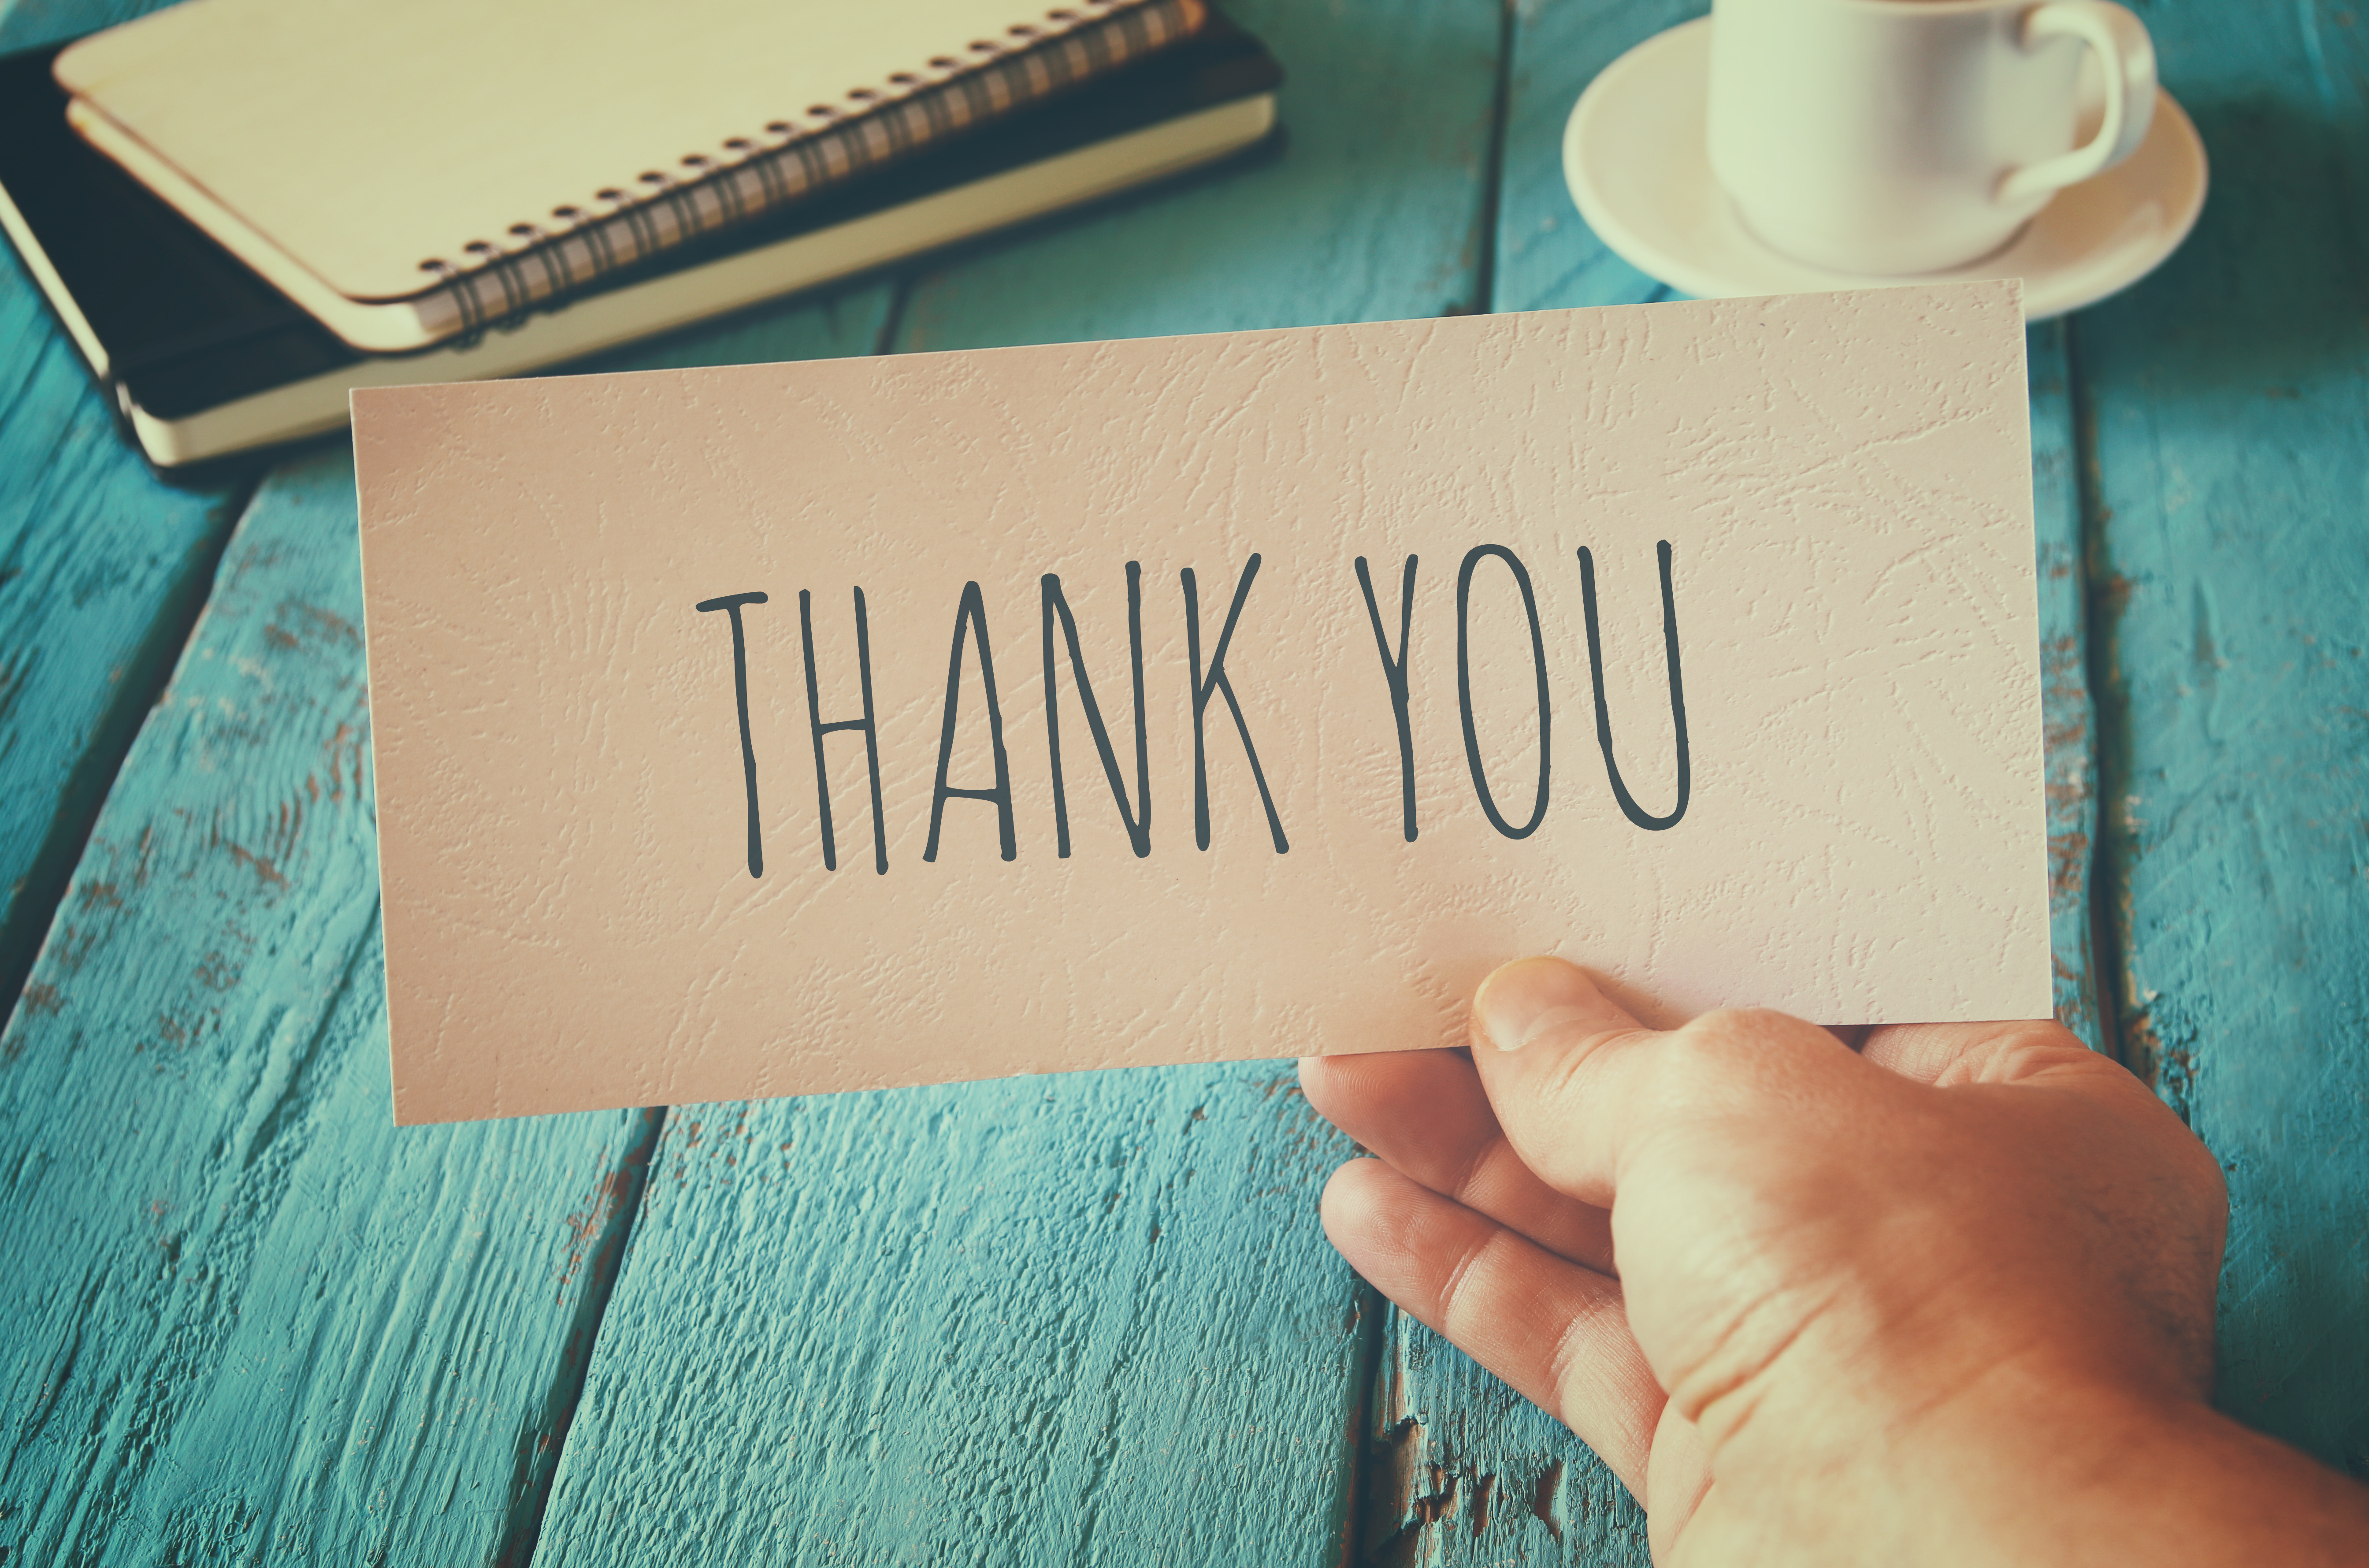 Man Hand Holding Card With The Word Thank You. Retro Style Image